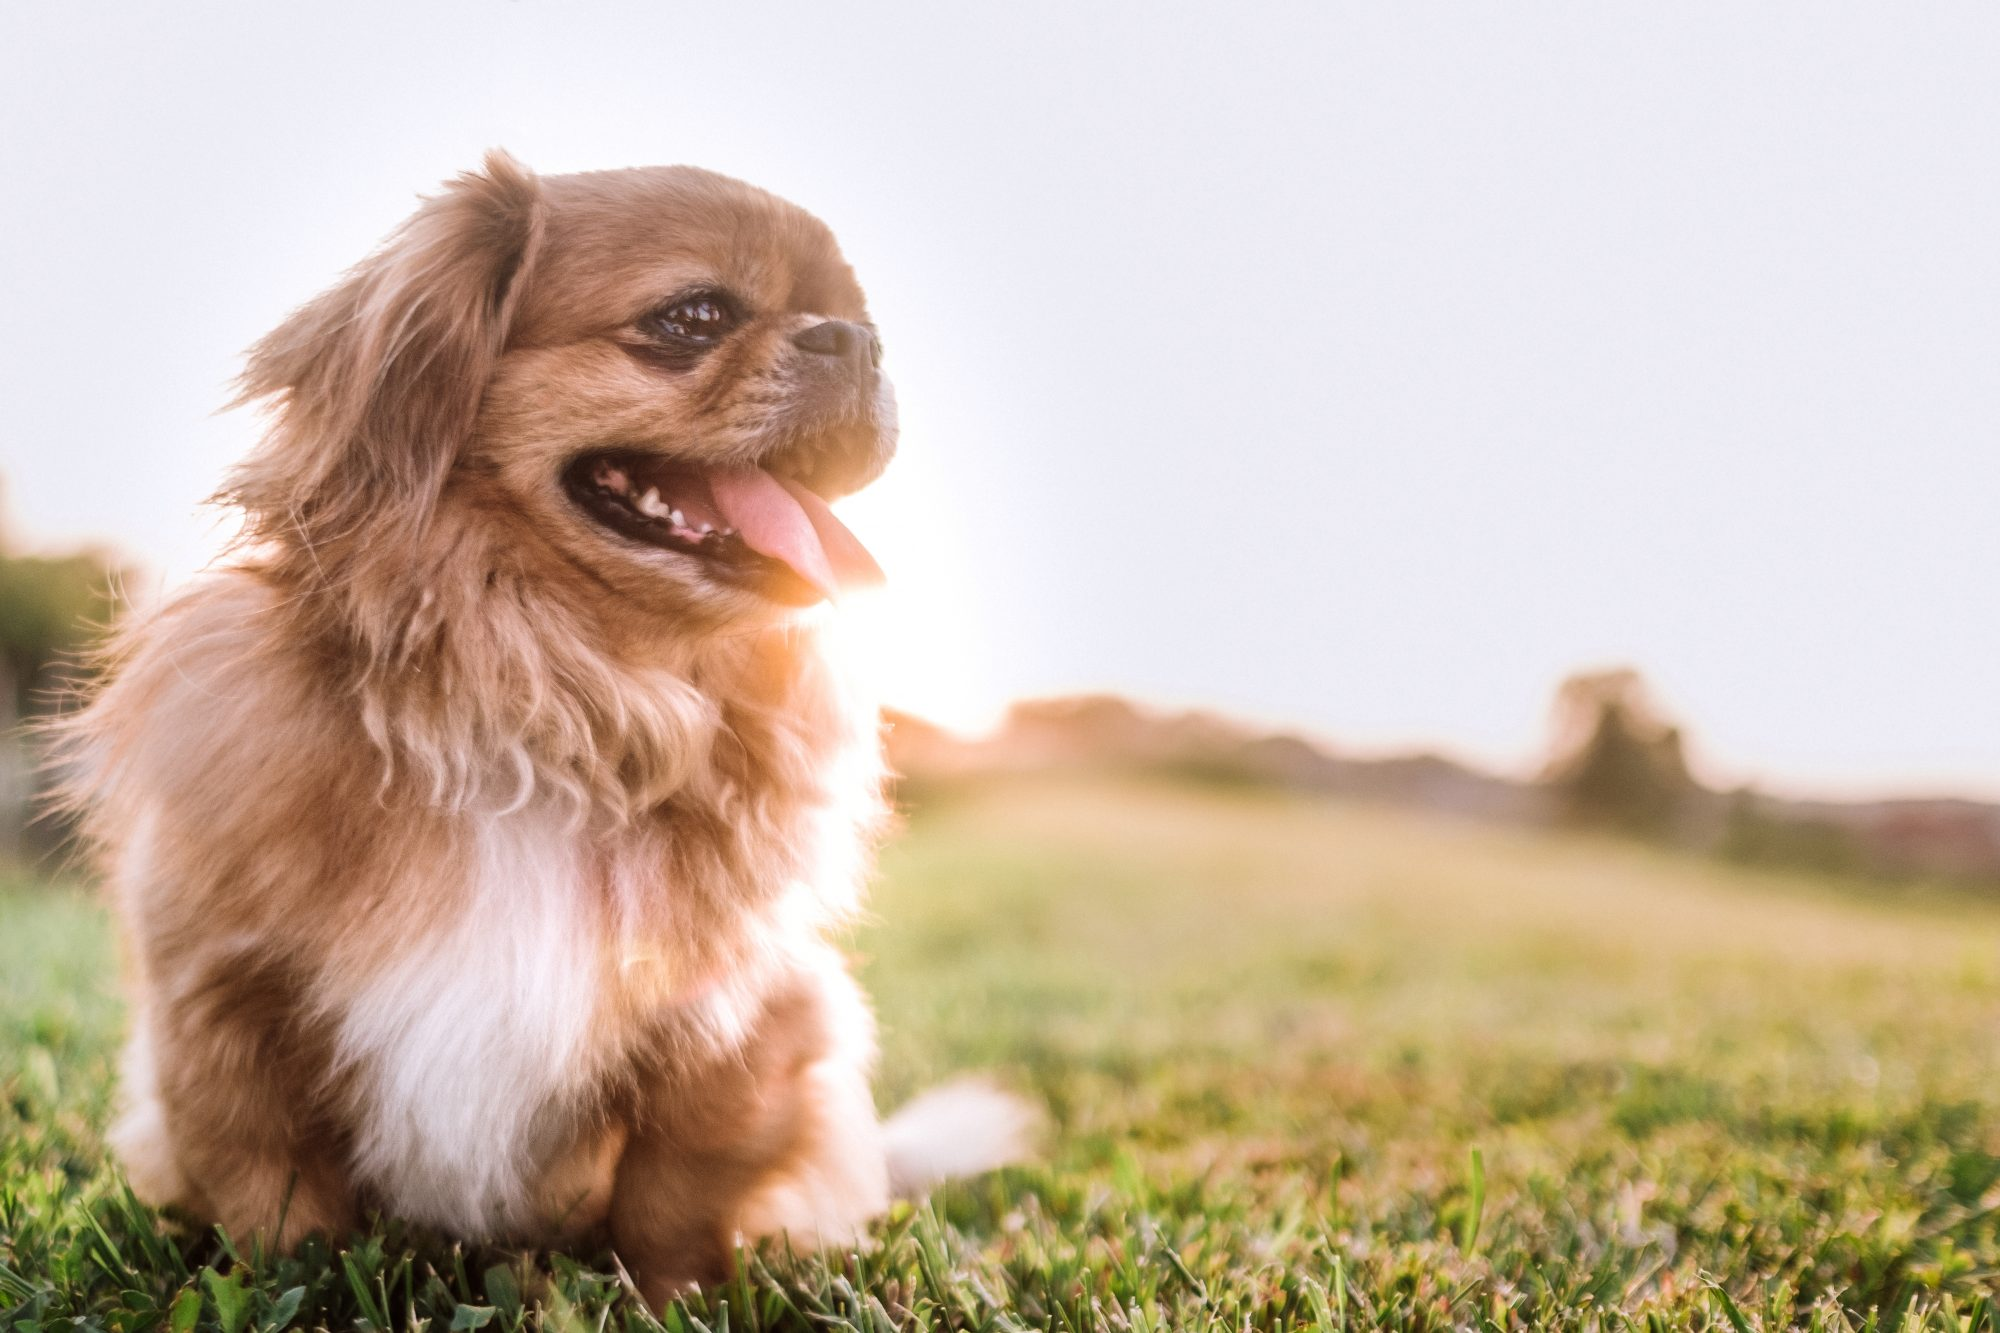 carefree Pekingese dog walking in a field